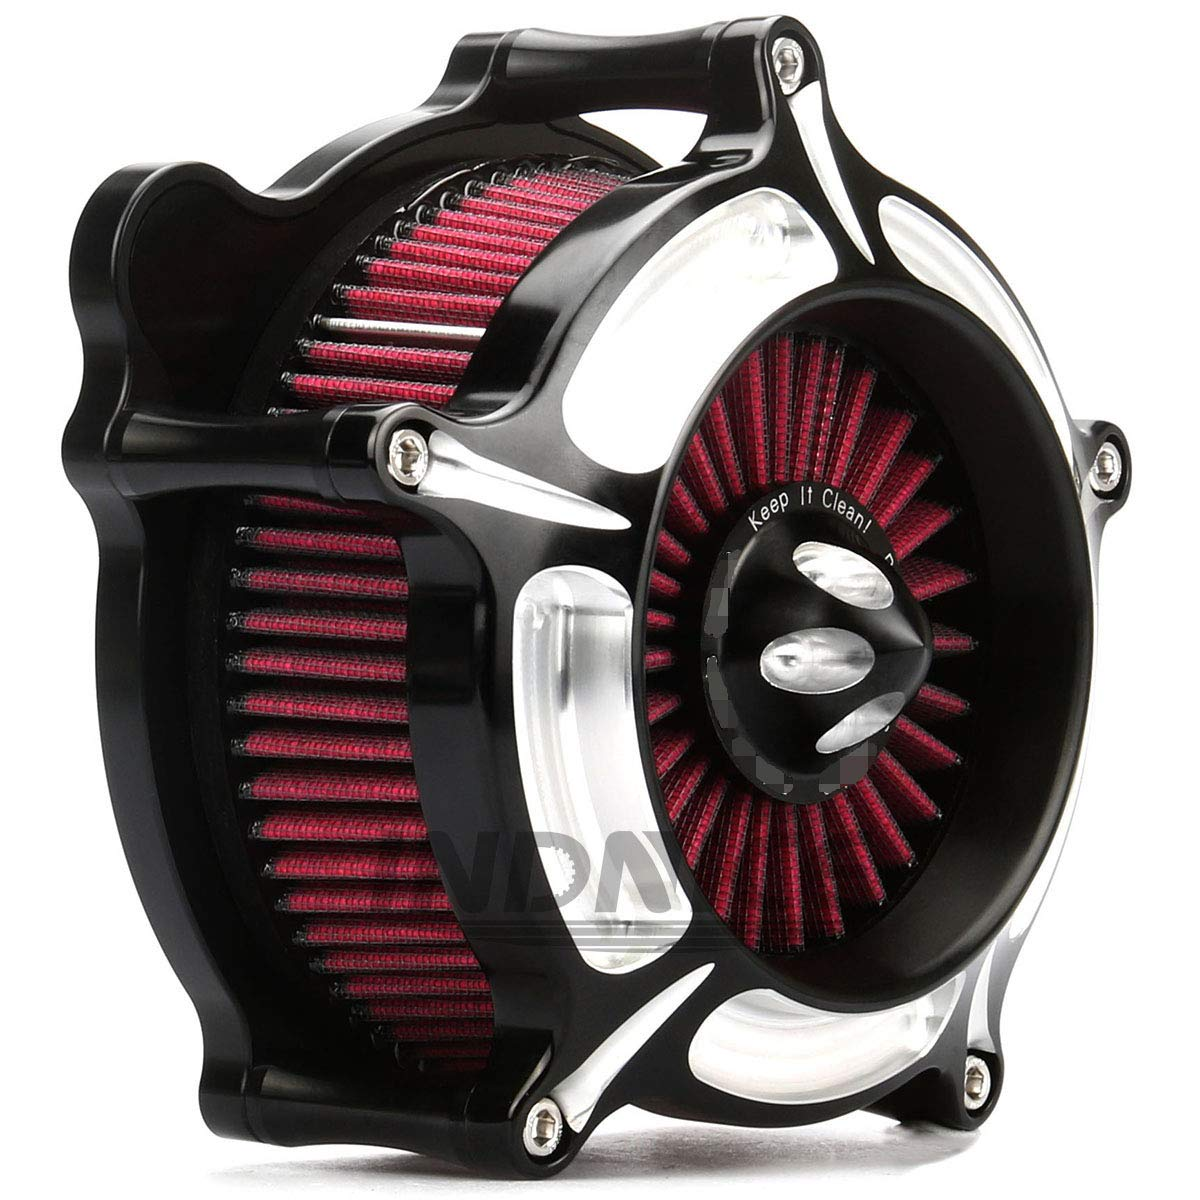 Turbine Black Edge Cut harley Air Cleaner street glide air filter harley road king air Intake system For Harley Touring parts 2008-2016 by HAPPY-MOTOR